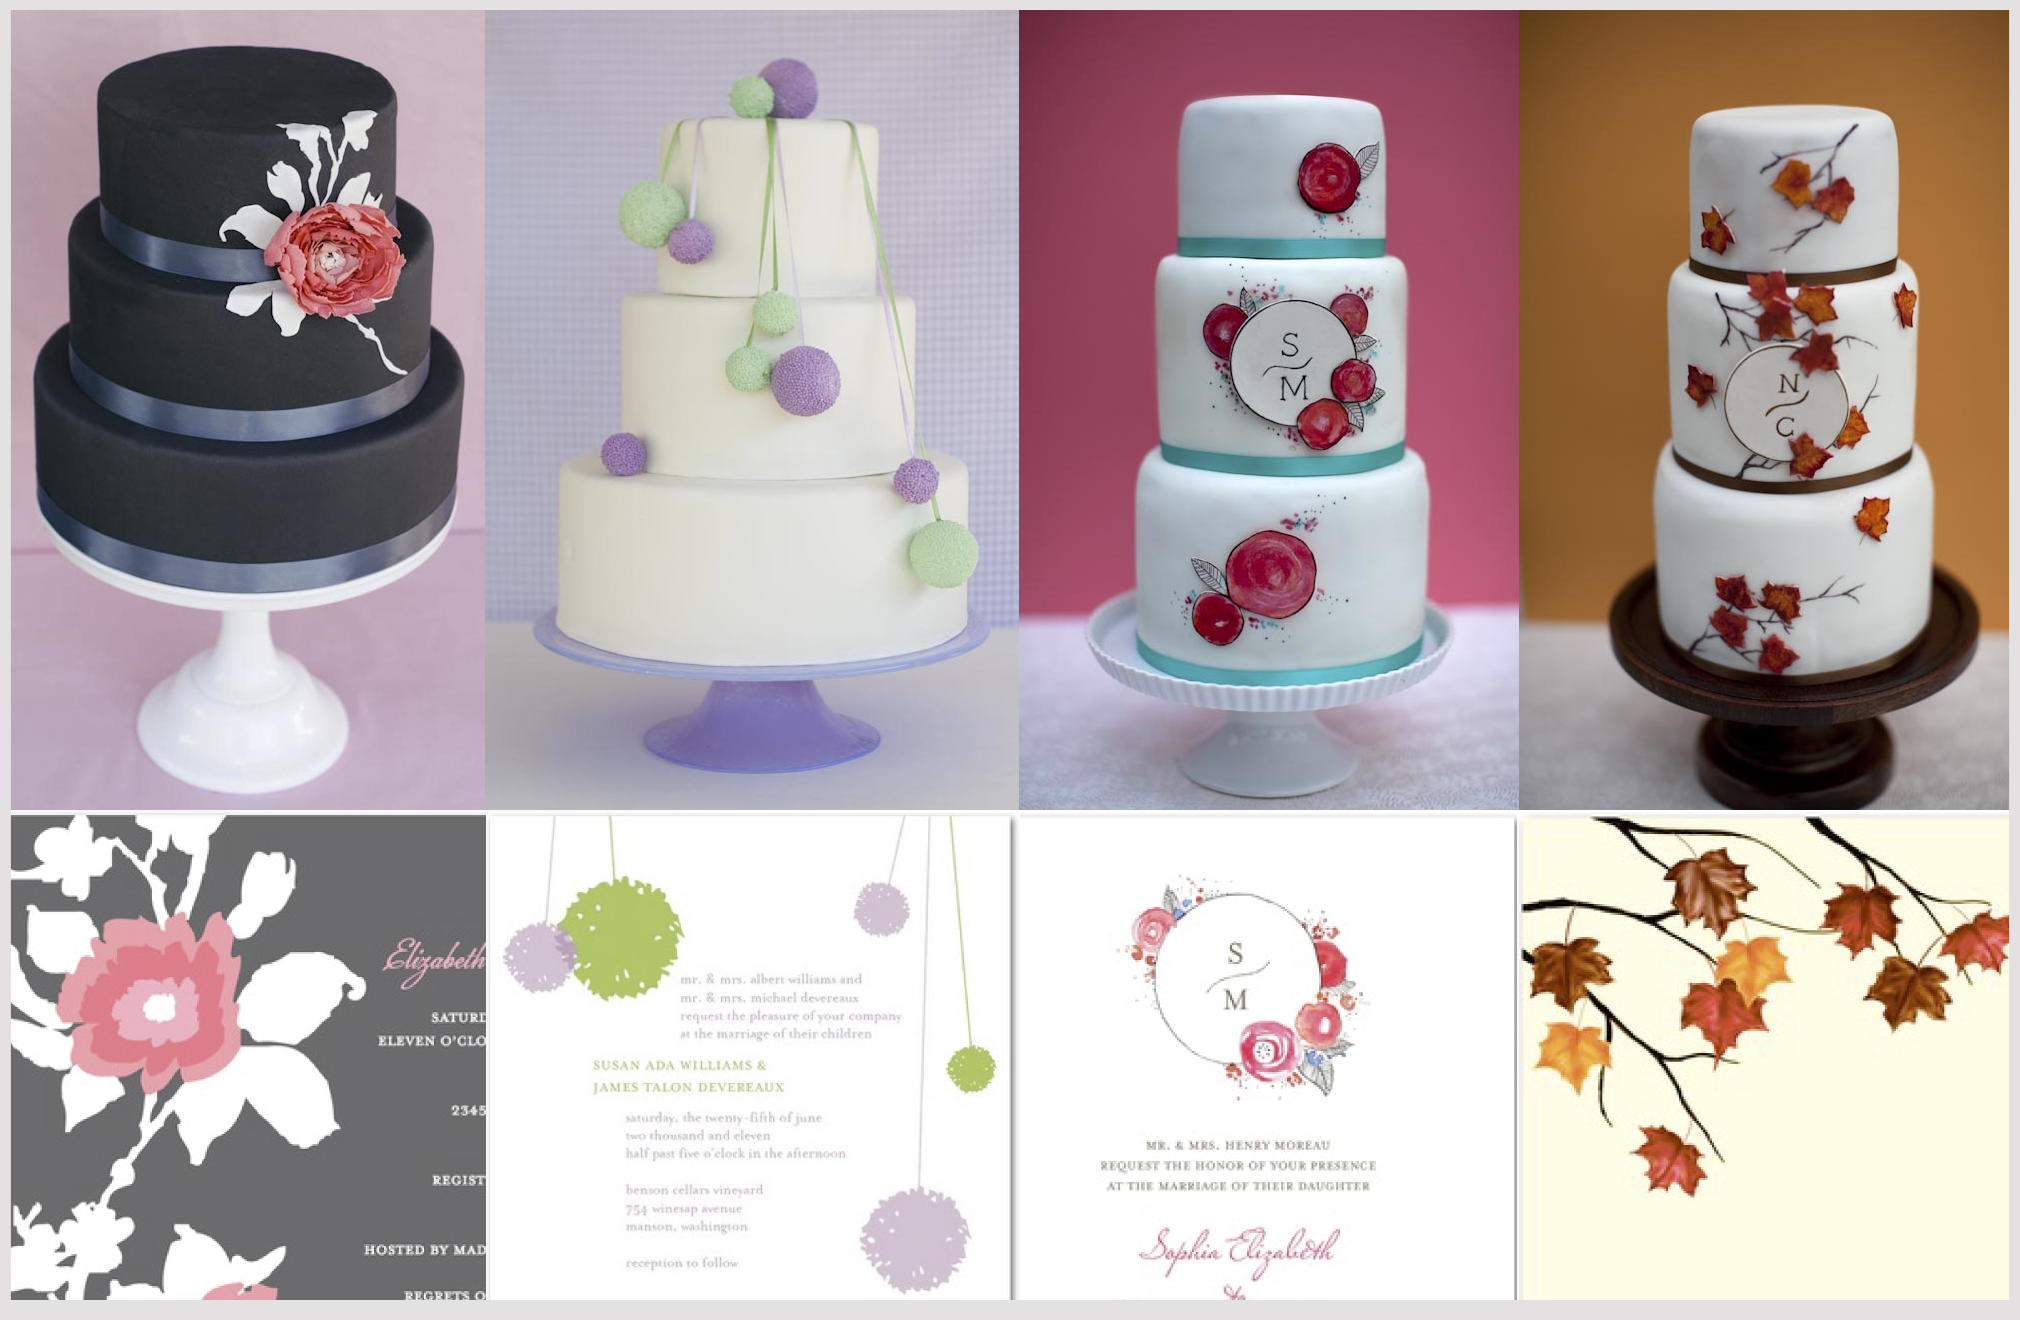 Wedding-cakes-wedding-invitations-ideas-inspiration.original